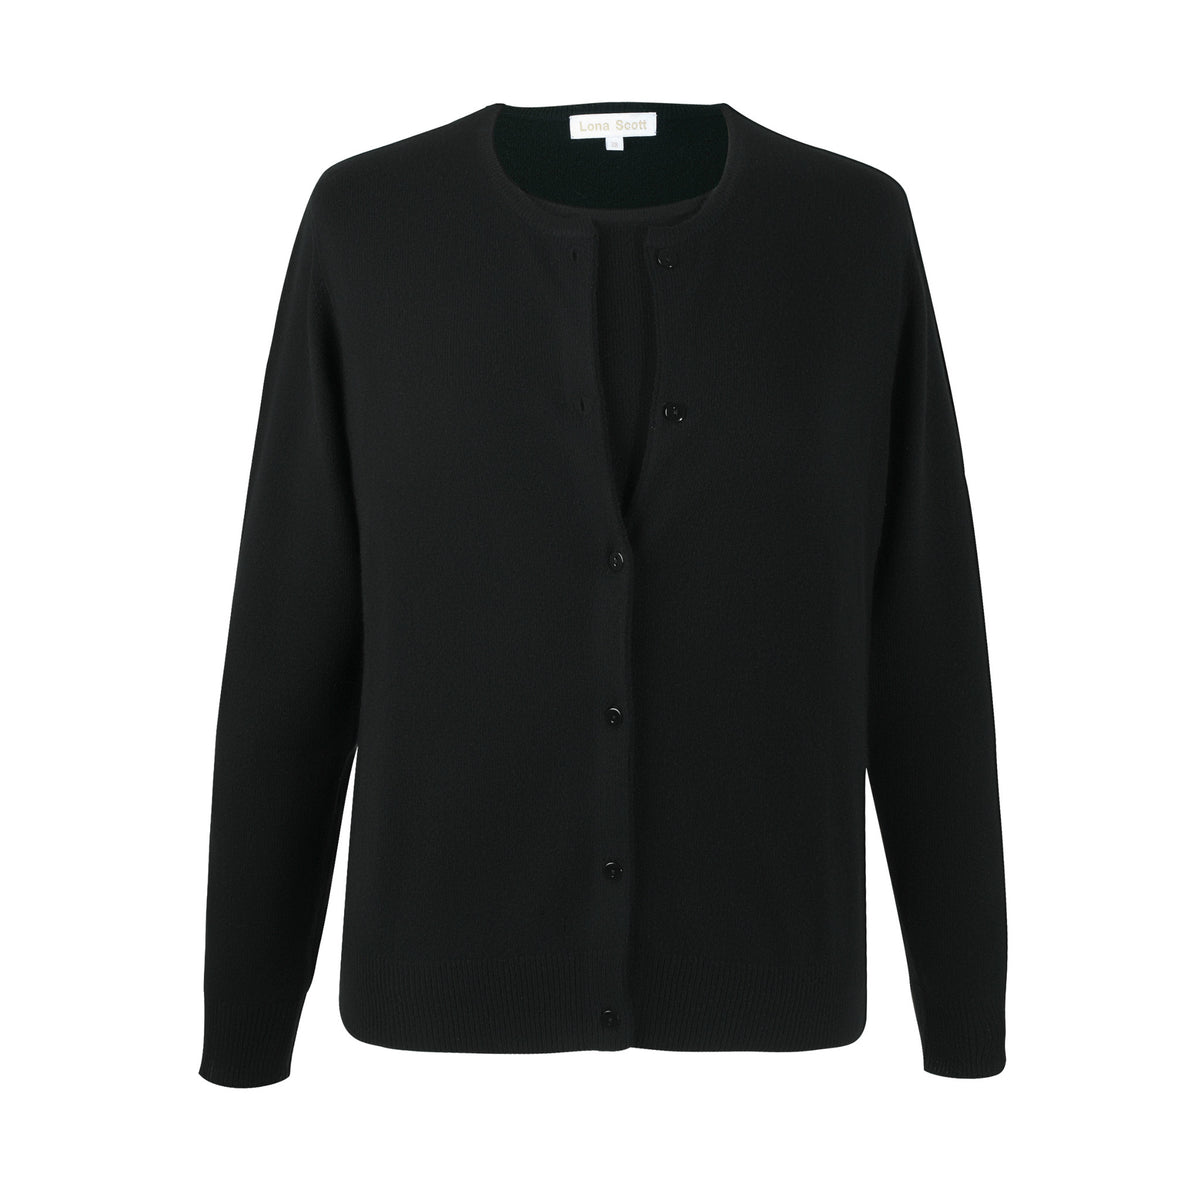 Ladies Black Cashmere Sweater Set | Cardigan | The Cashmere Choice London